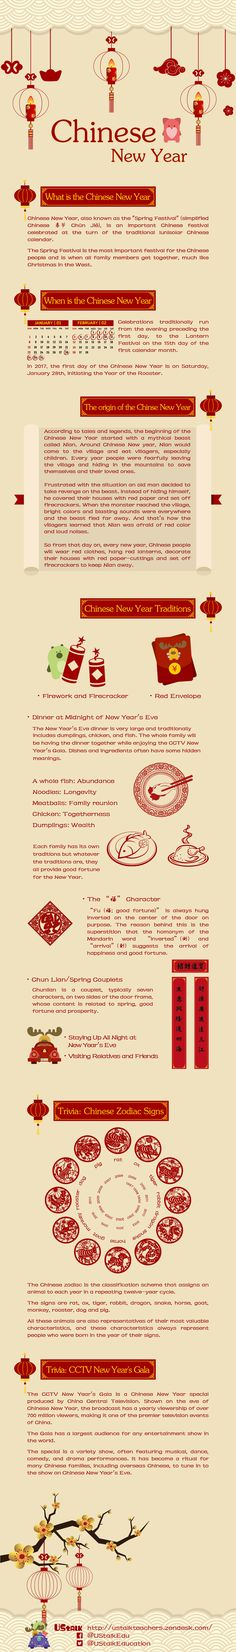 ustalk e learning infographics on chinese new year learn - Chinese New Year Superstitions